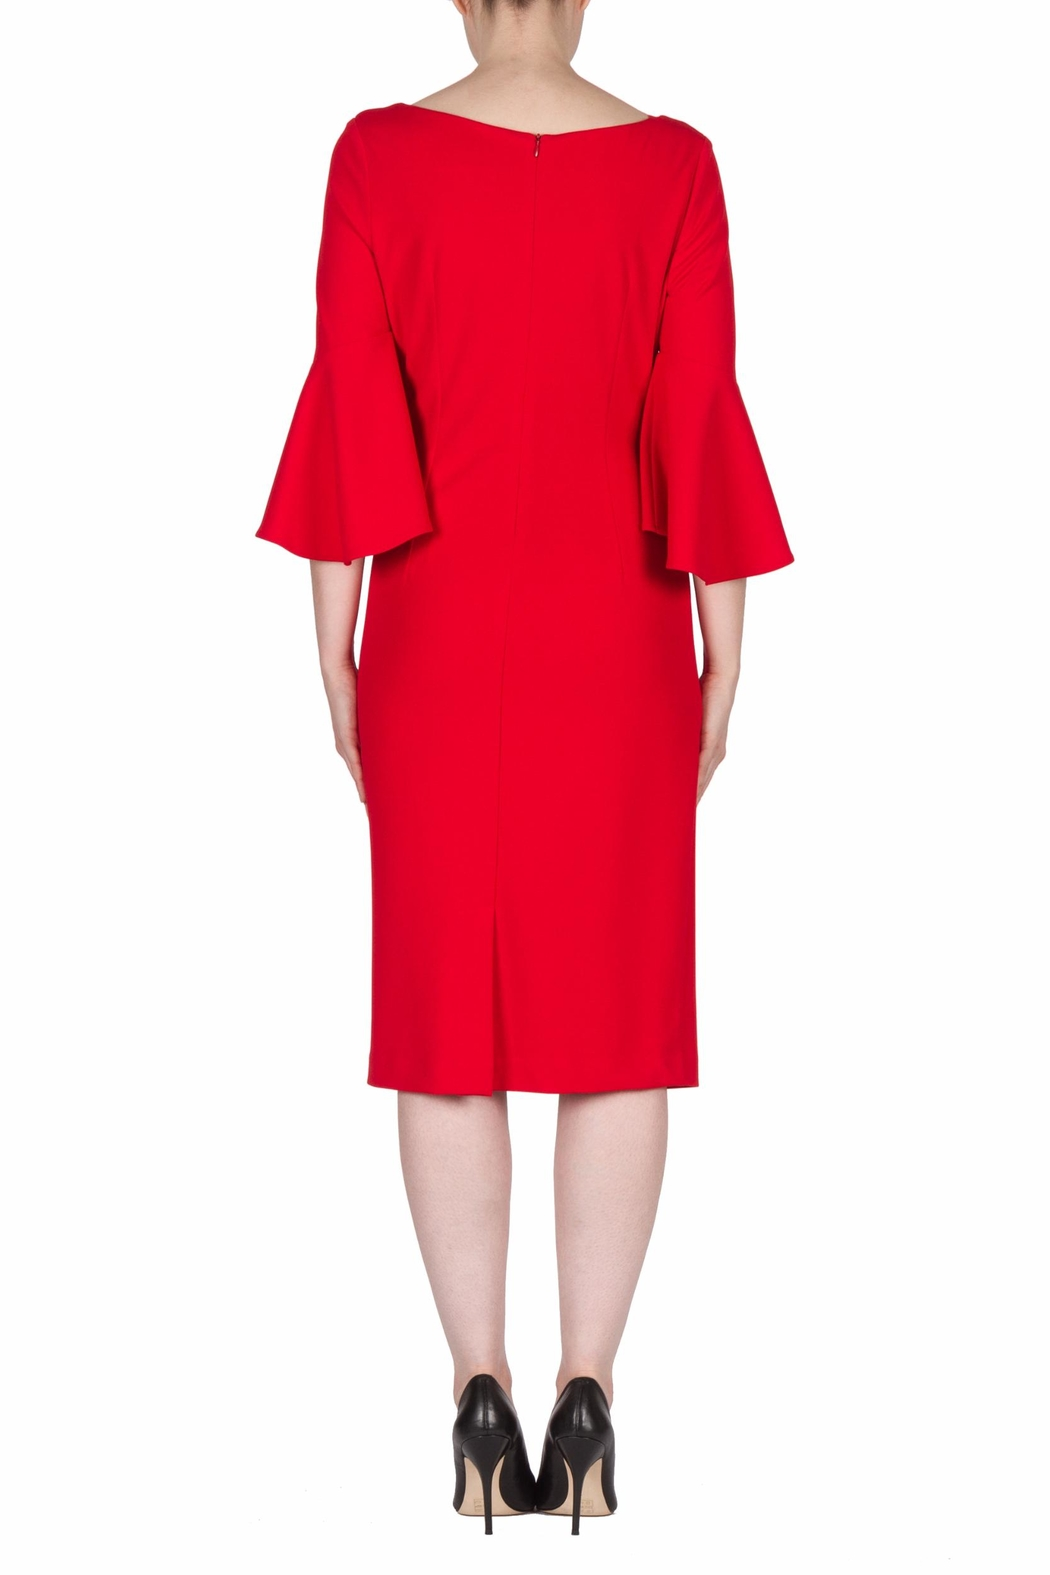 Joseph Ribkoff Lipstick Red Dress - Side Cropped Image